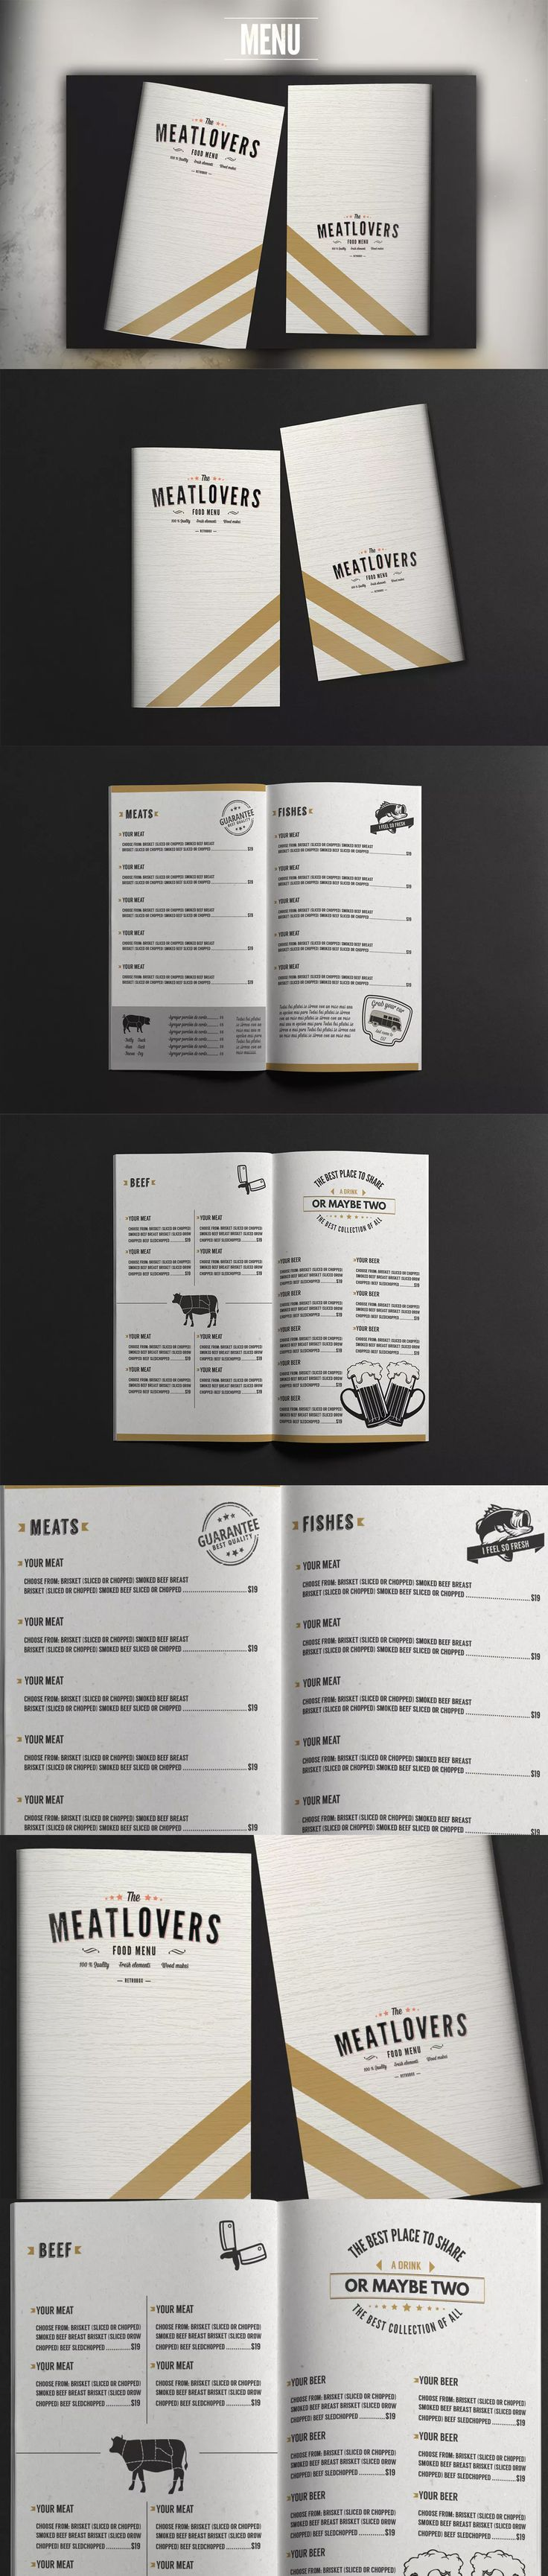 92 best food menu templates images on pinterest